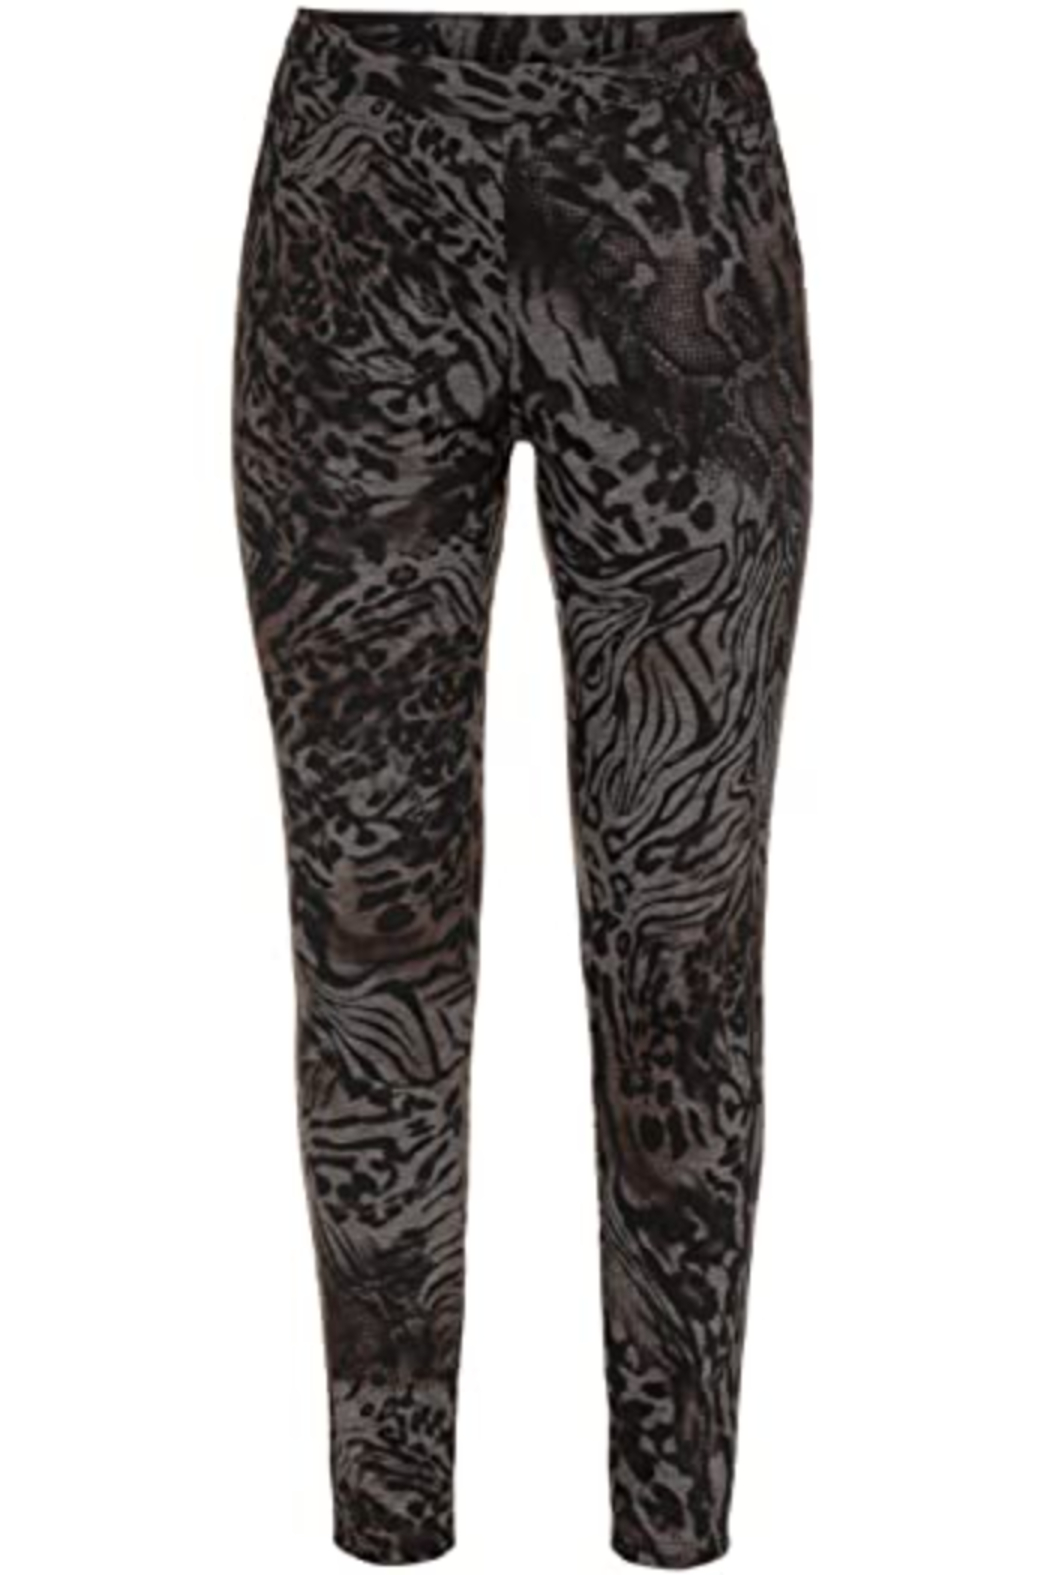 Tribal PULL ON LEGGING - Front Cropped Image